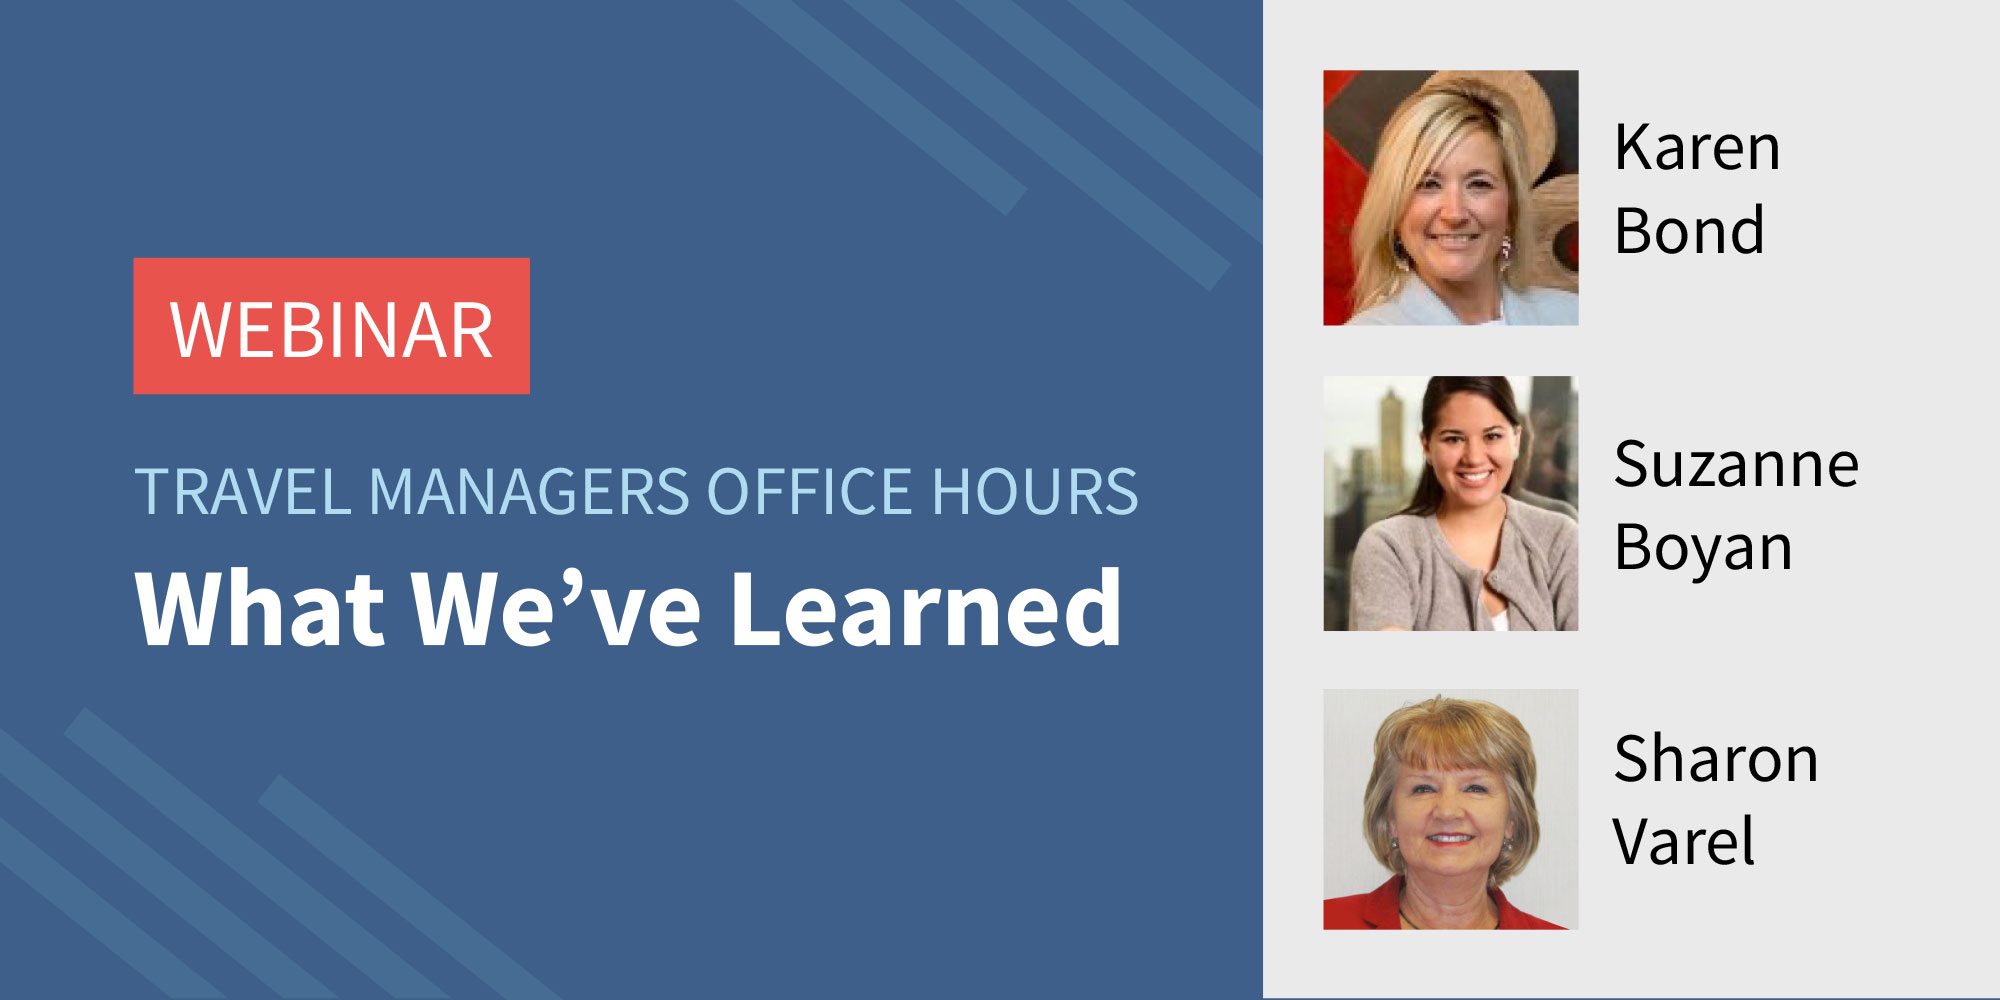 Traxo Travel Managers Office Hours Webinar What We've Learned Featured Image